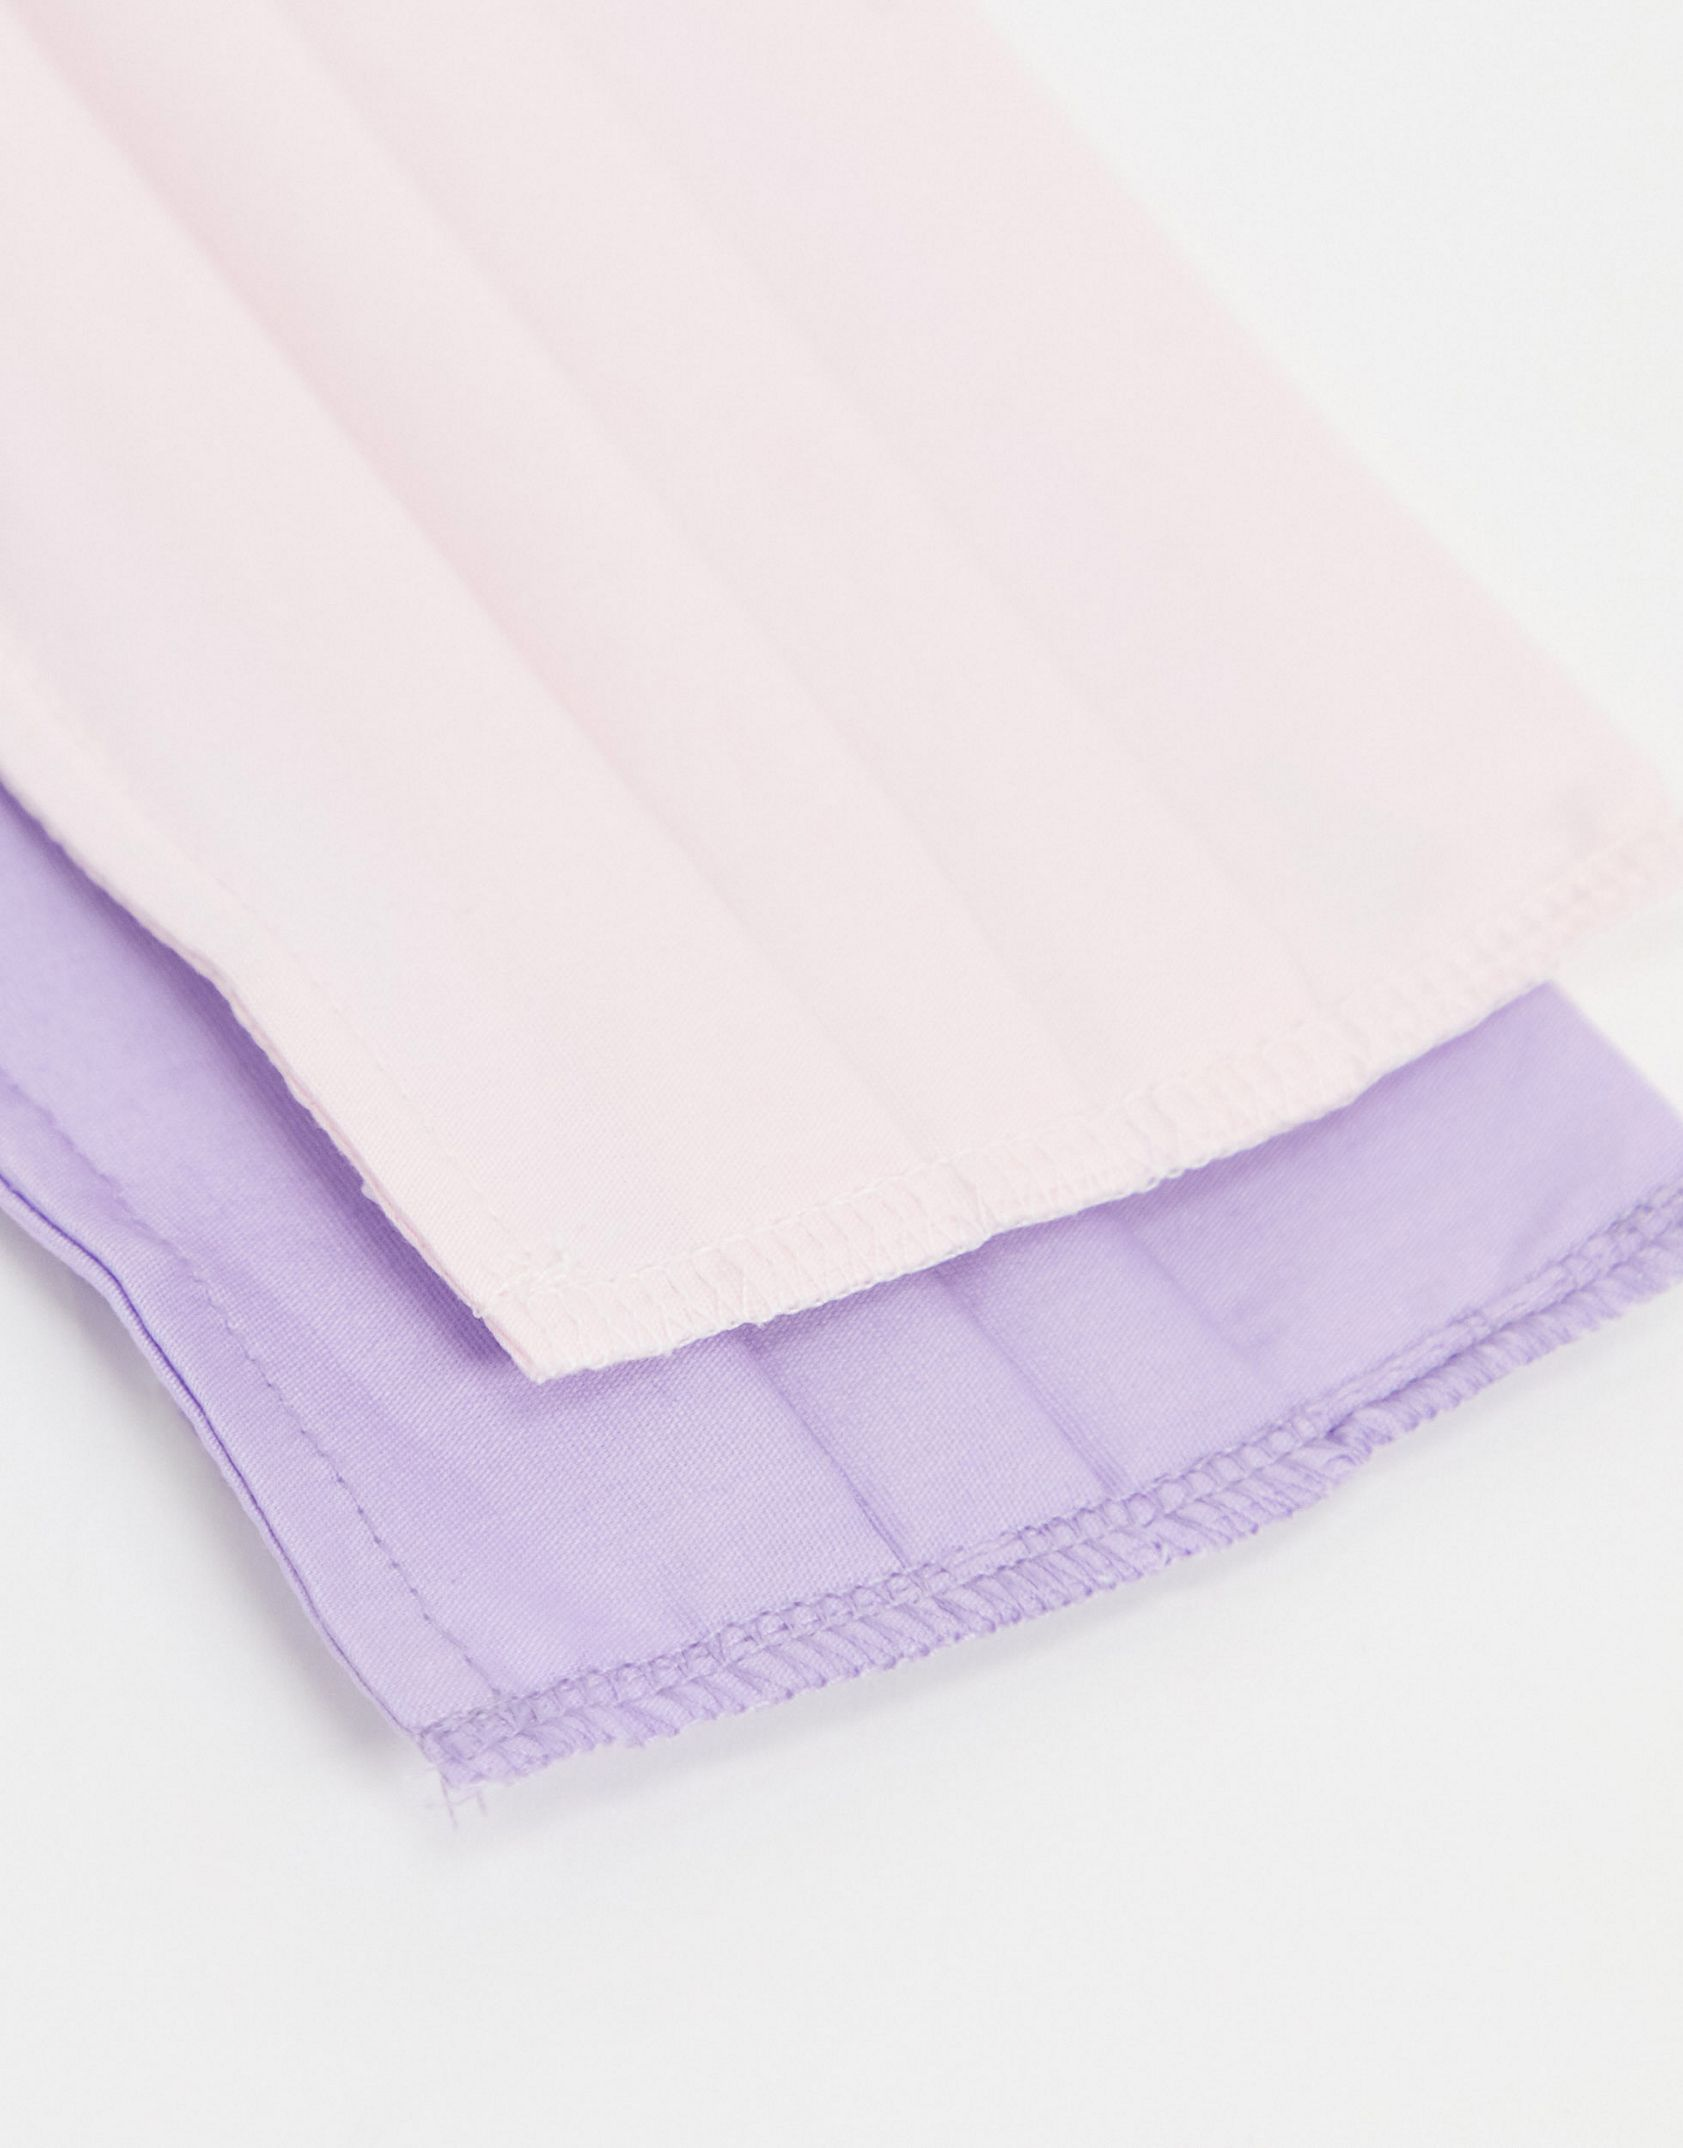 Miss Selfridge 2 pack face covering in lilac and pink - ASOS Price Checker